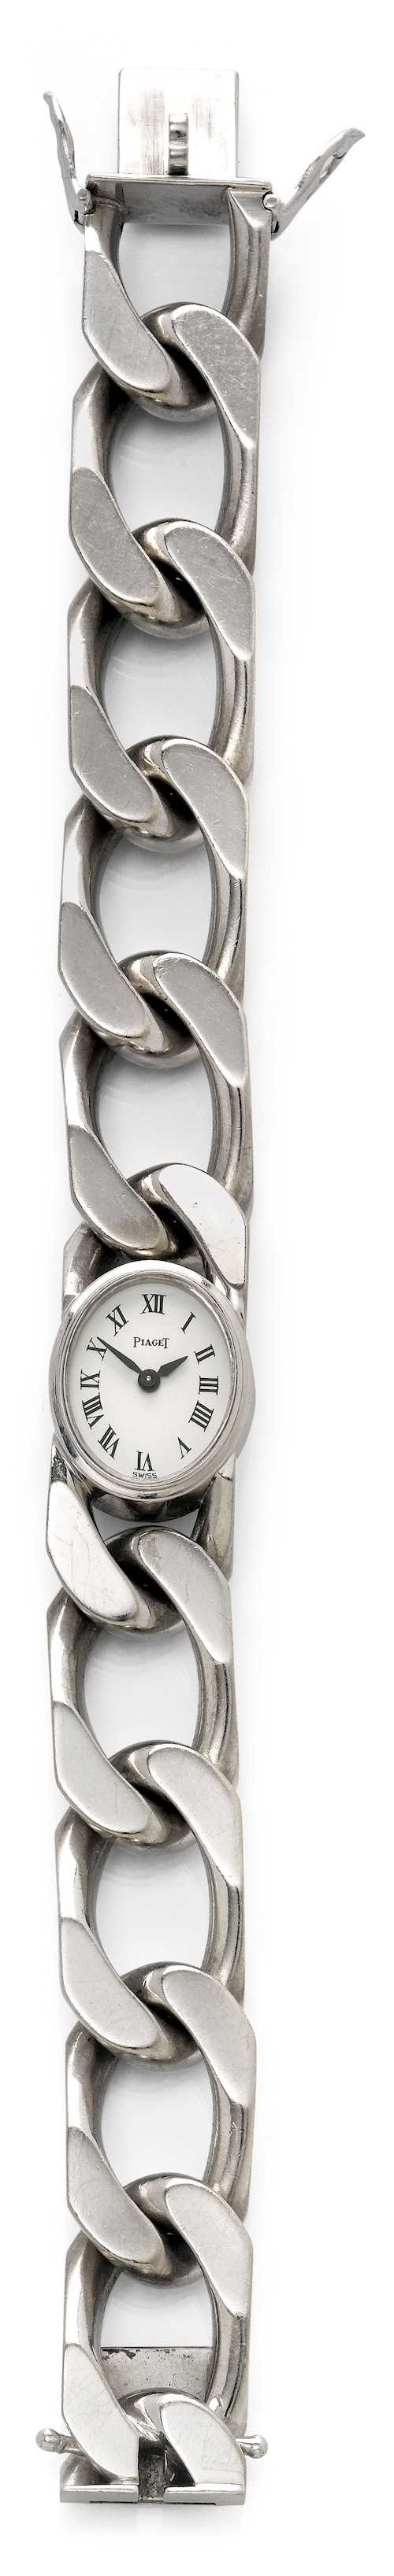 Piaget, attractive Lady's wristwatch.